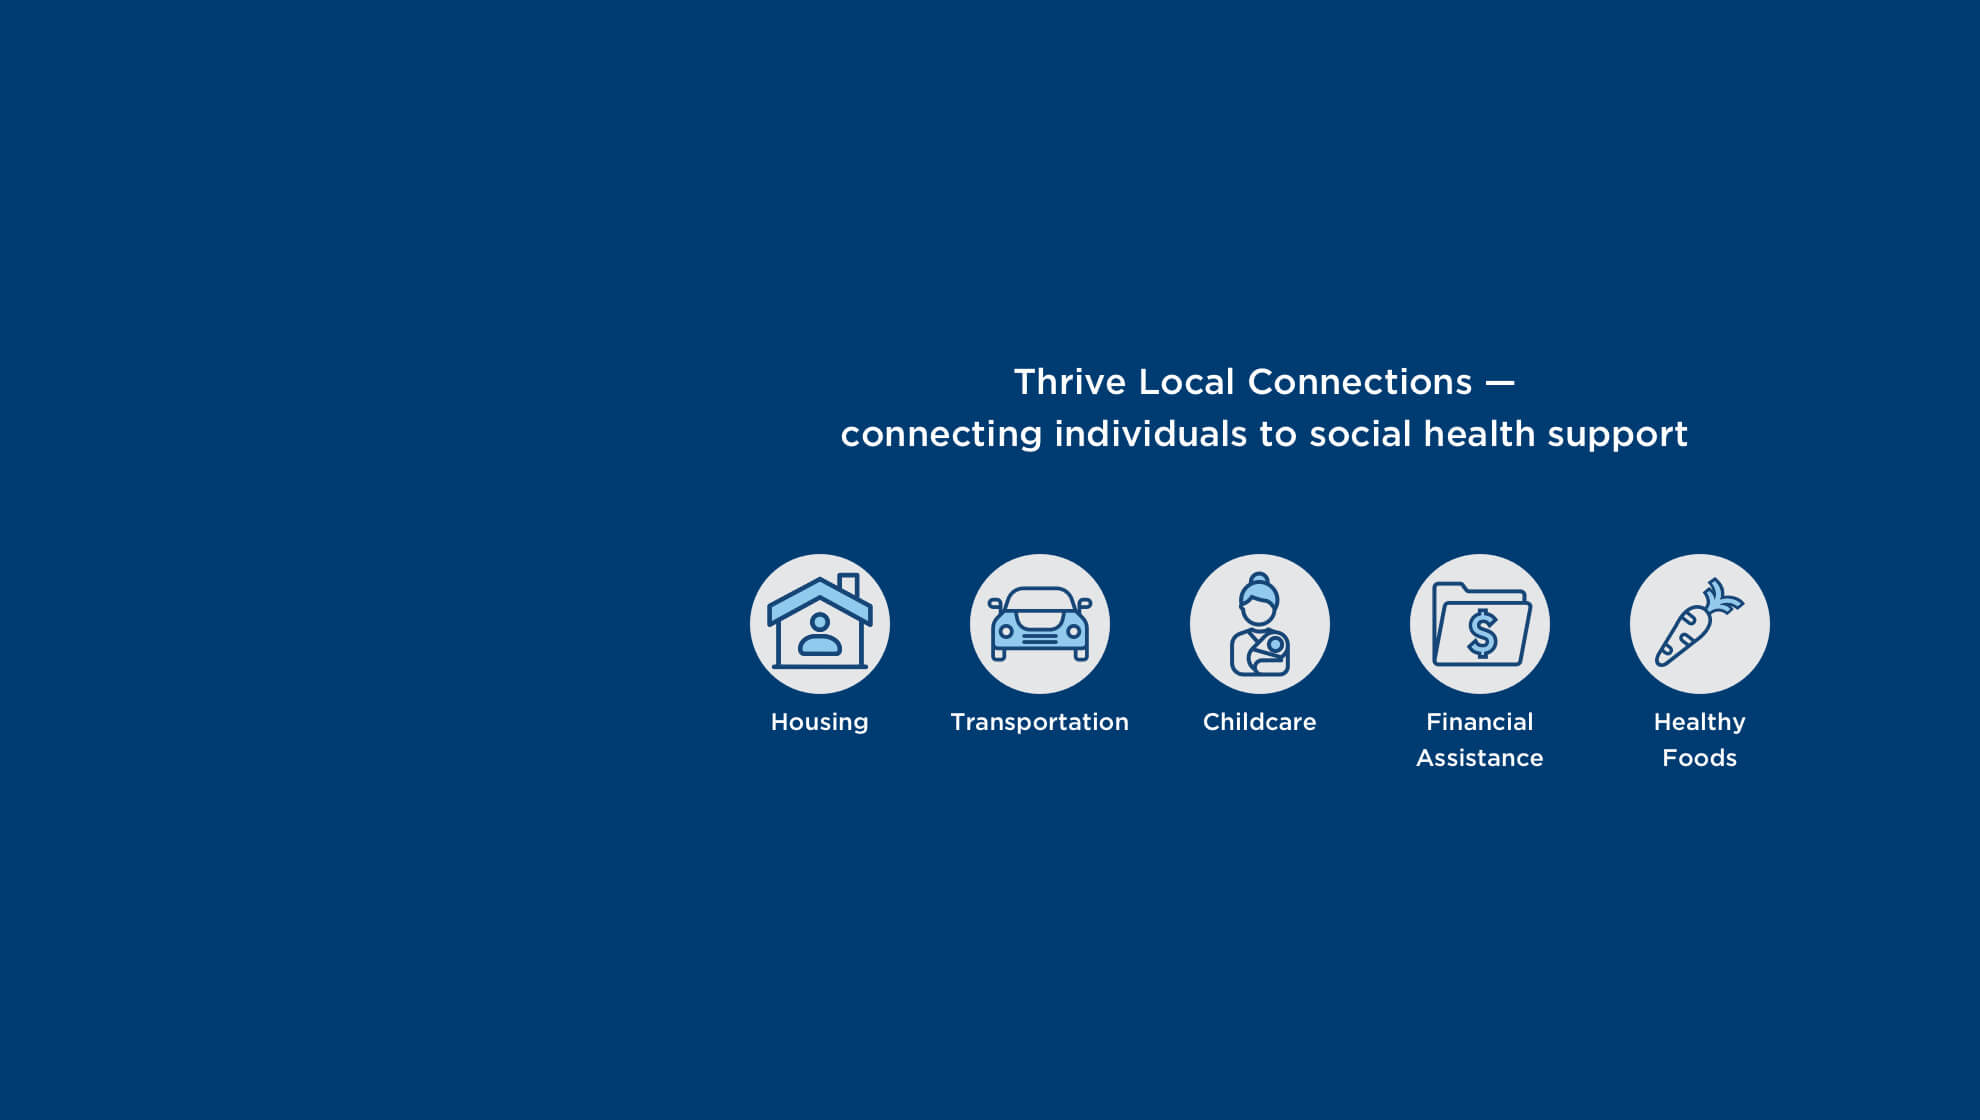 Thrive Local Connections — connecting individuals to social health support. Housing, Transportation, Childcare, Financial Assistance, Healthy Foods.